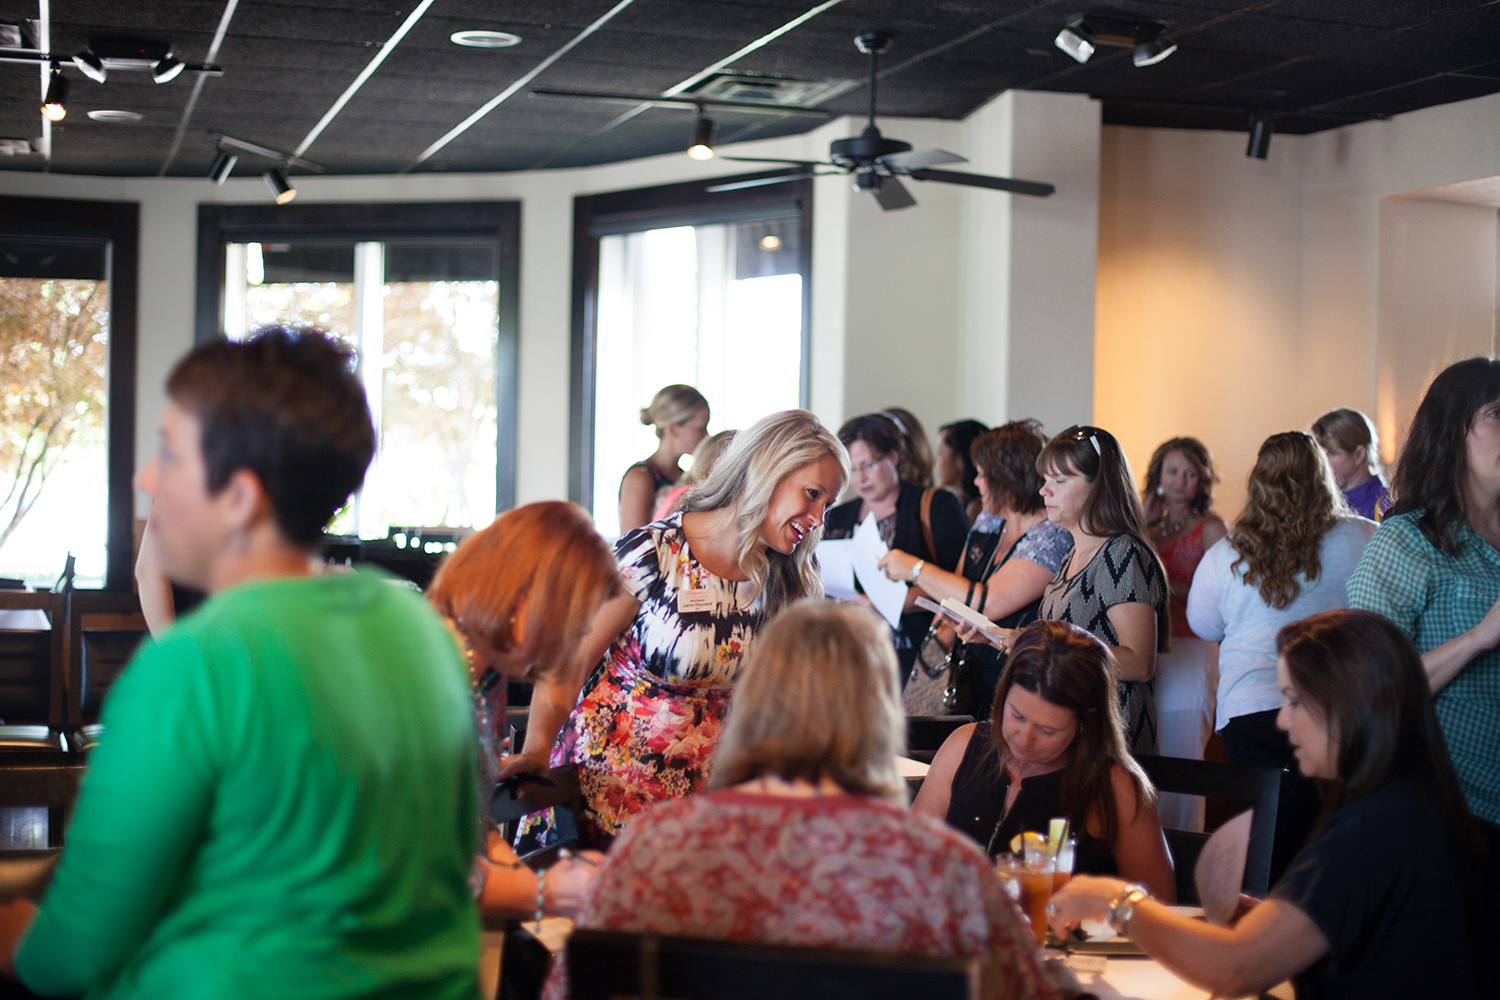 A Must Read for Those That Want To Know More About Women In Networking NWA, What We Are Up To and How You Can Join the Fun!